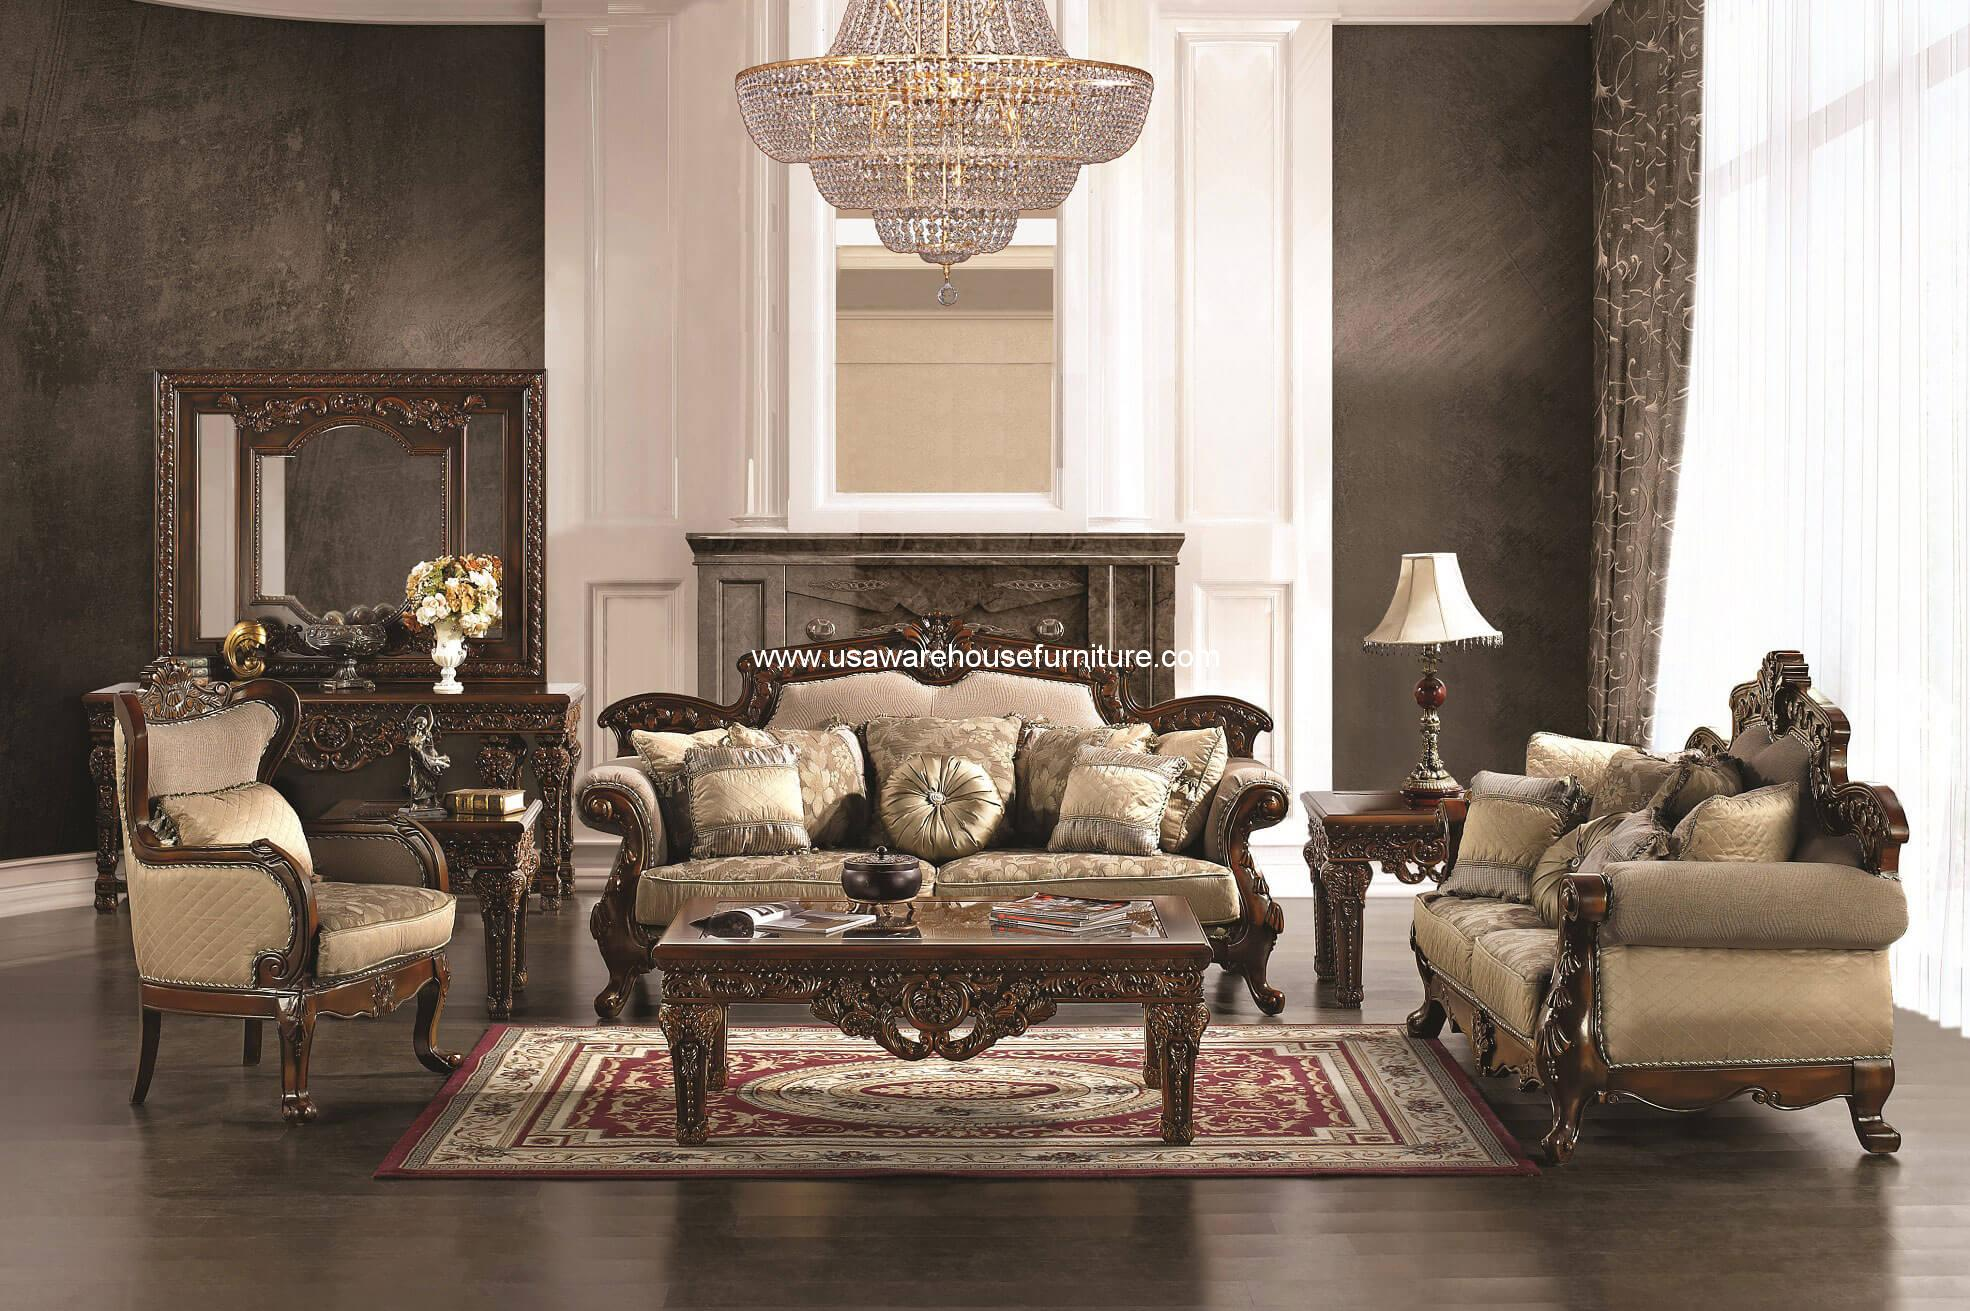 Hd 296 Homey Design Royal Wood Trim Sofa Set Usa Warehouse Furniture